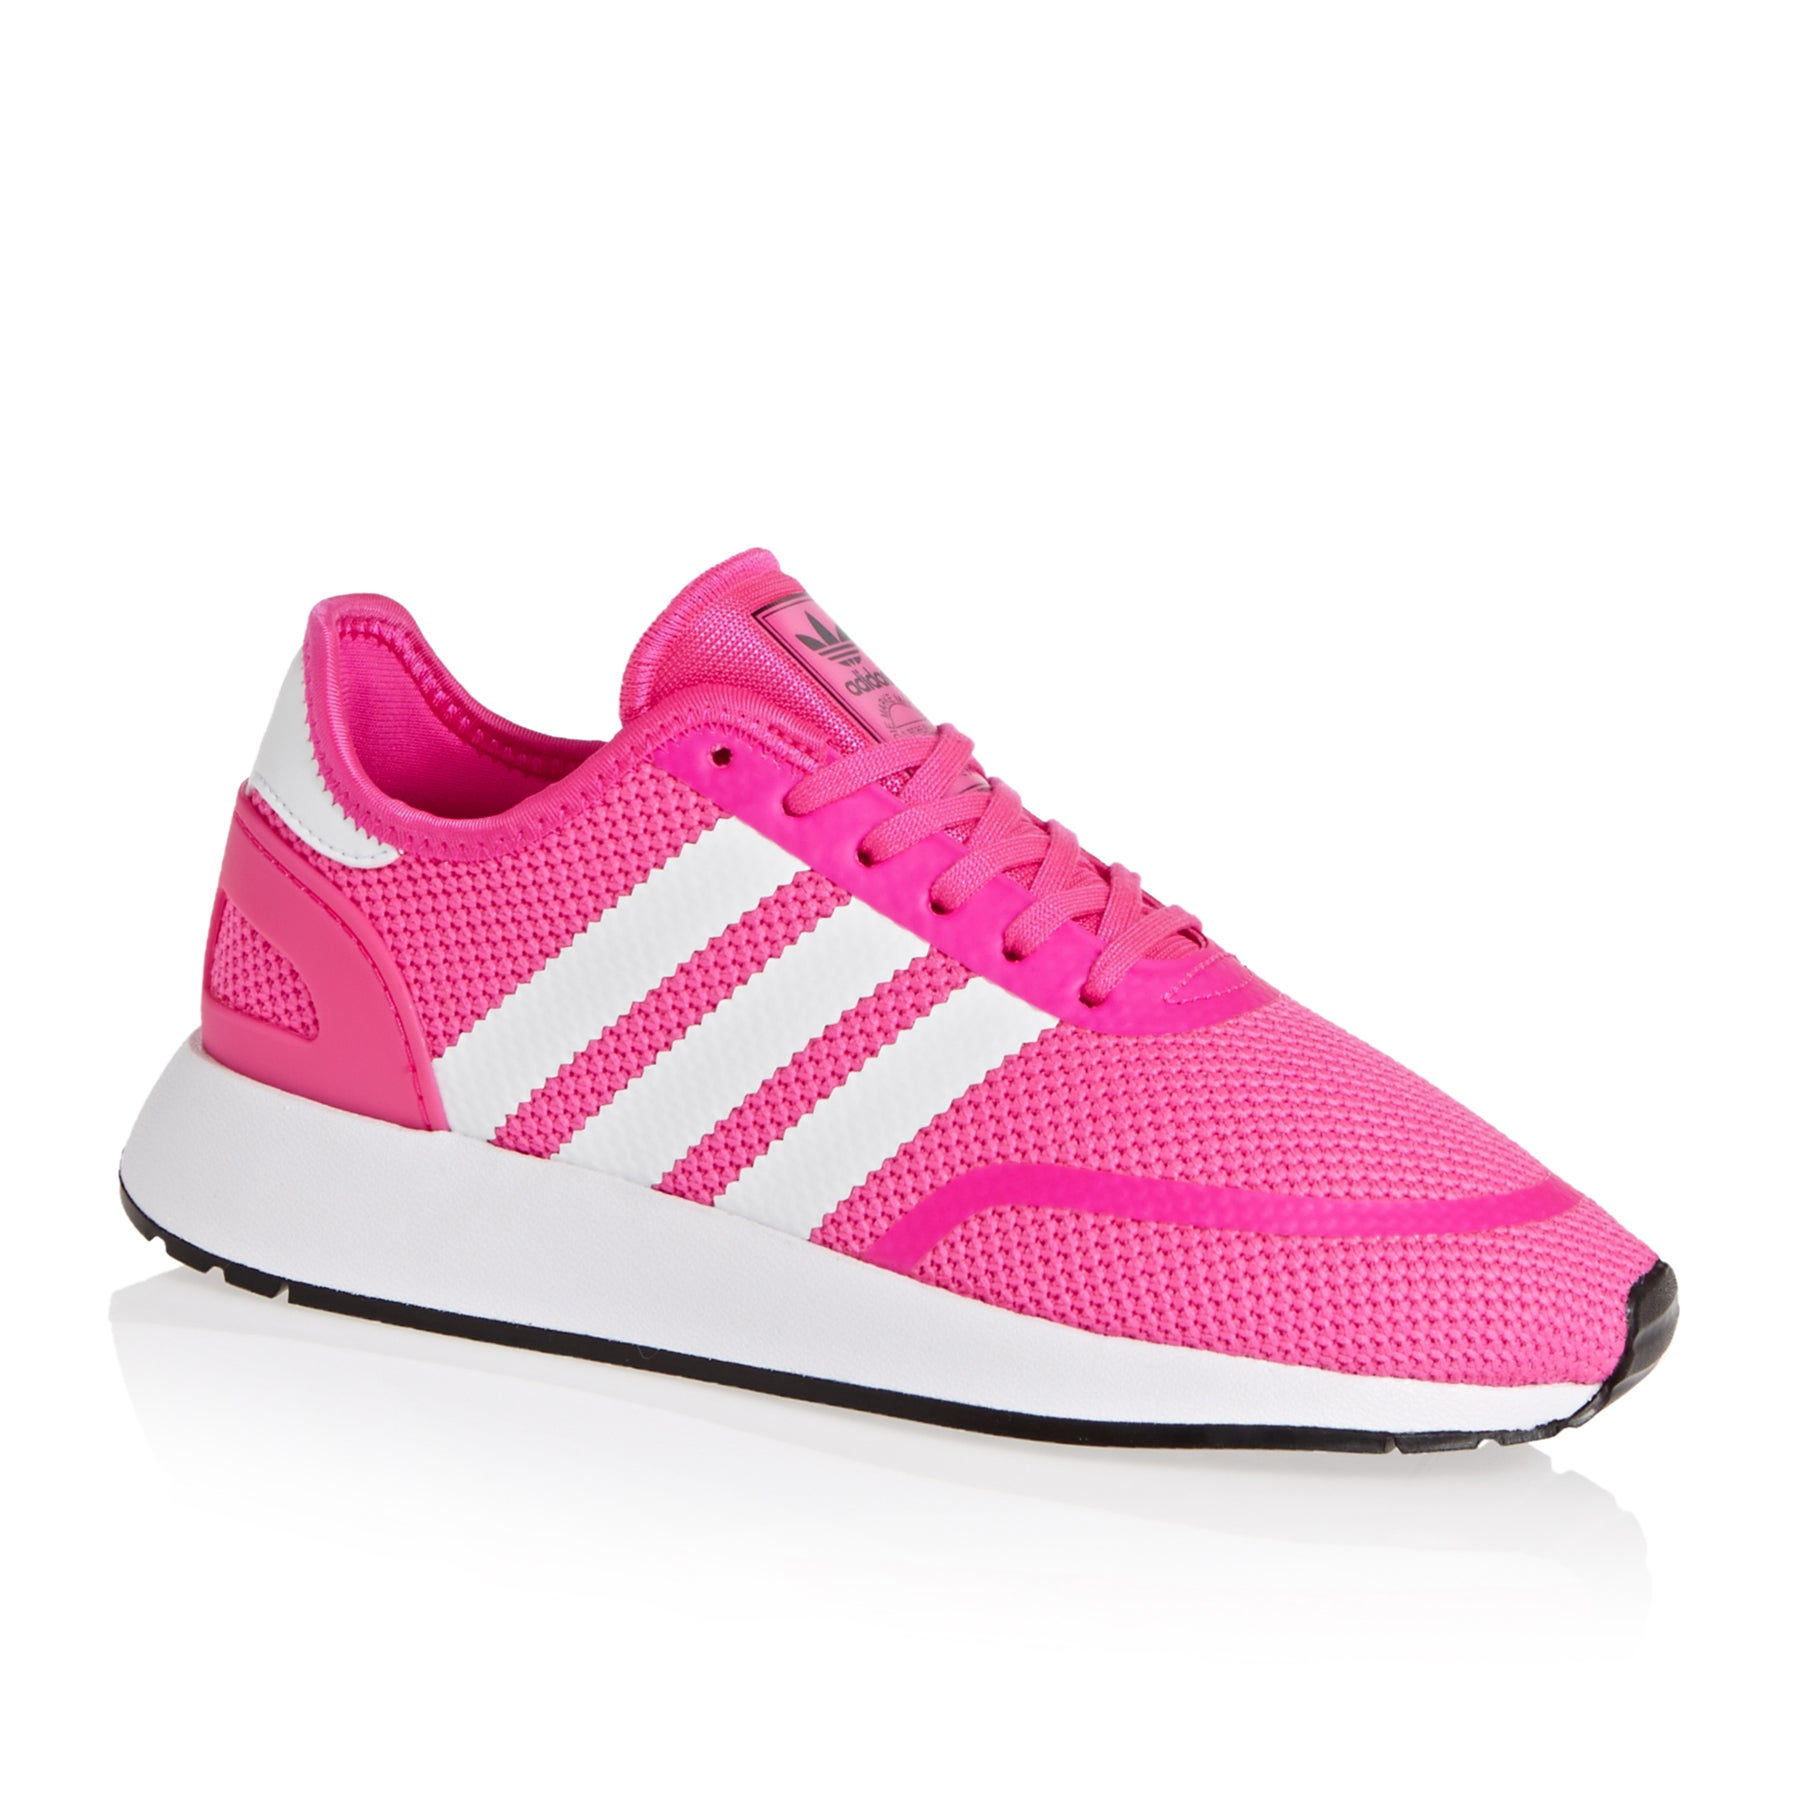 Adidas Originals N-5923 Junior Kids Shoes - Shocking Pink White Black